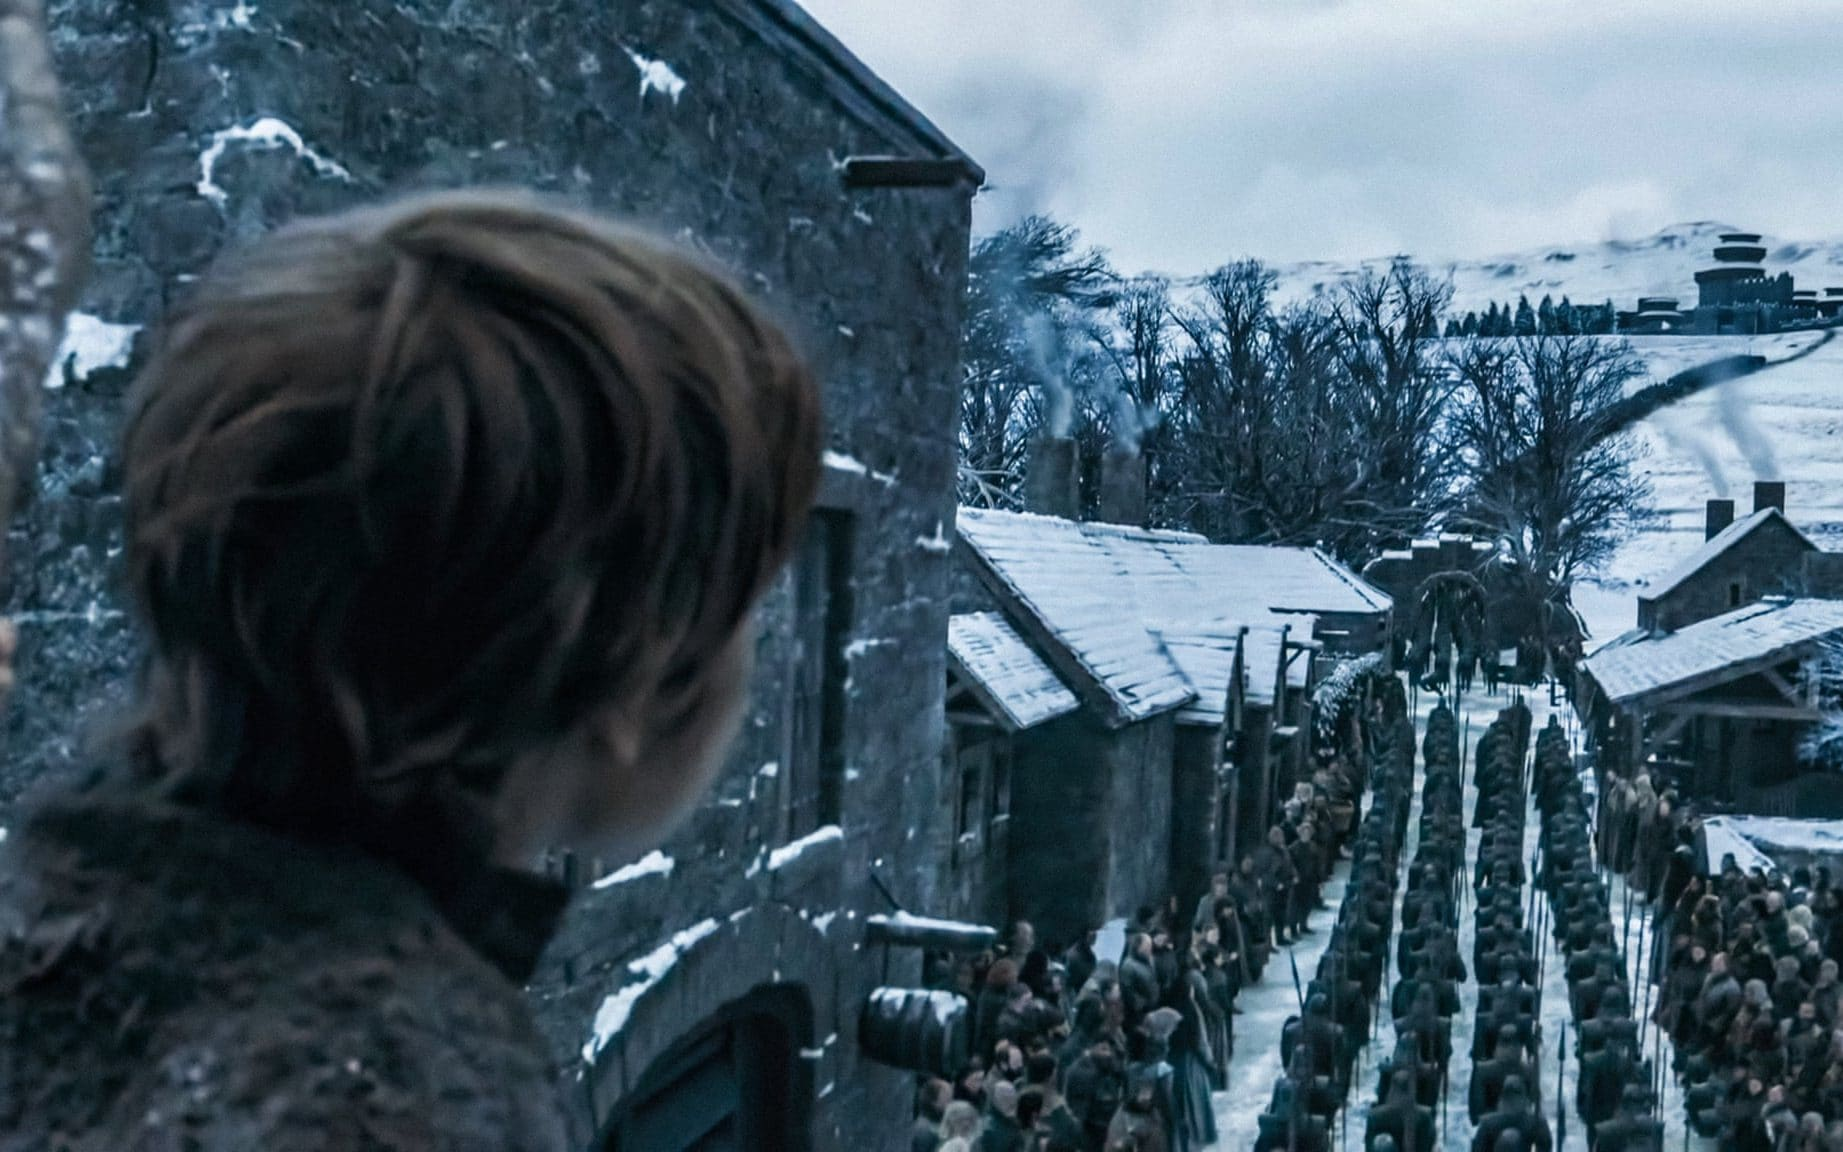 Game of Thrones: Winterfell (T8xE01)